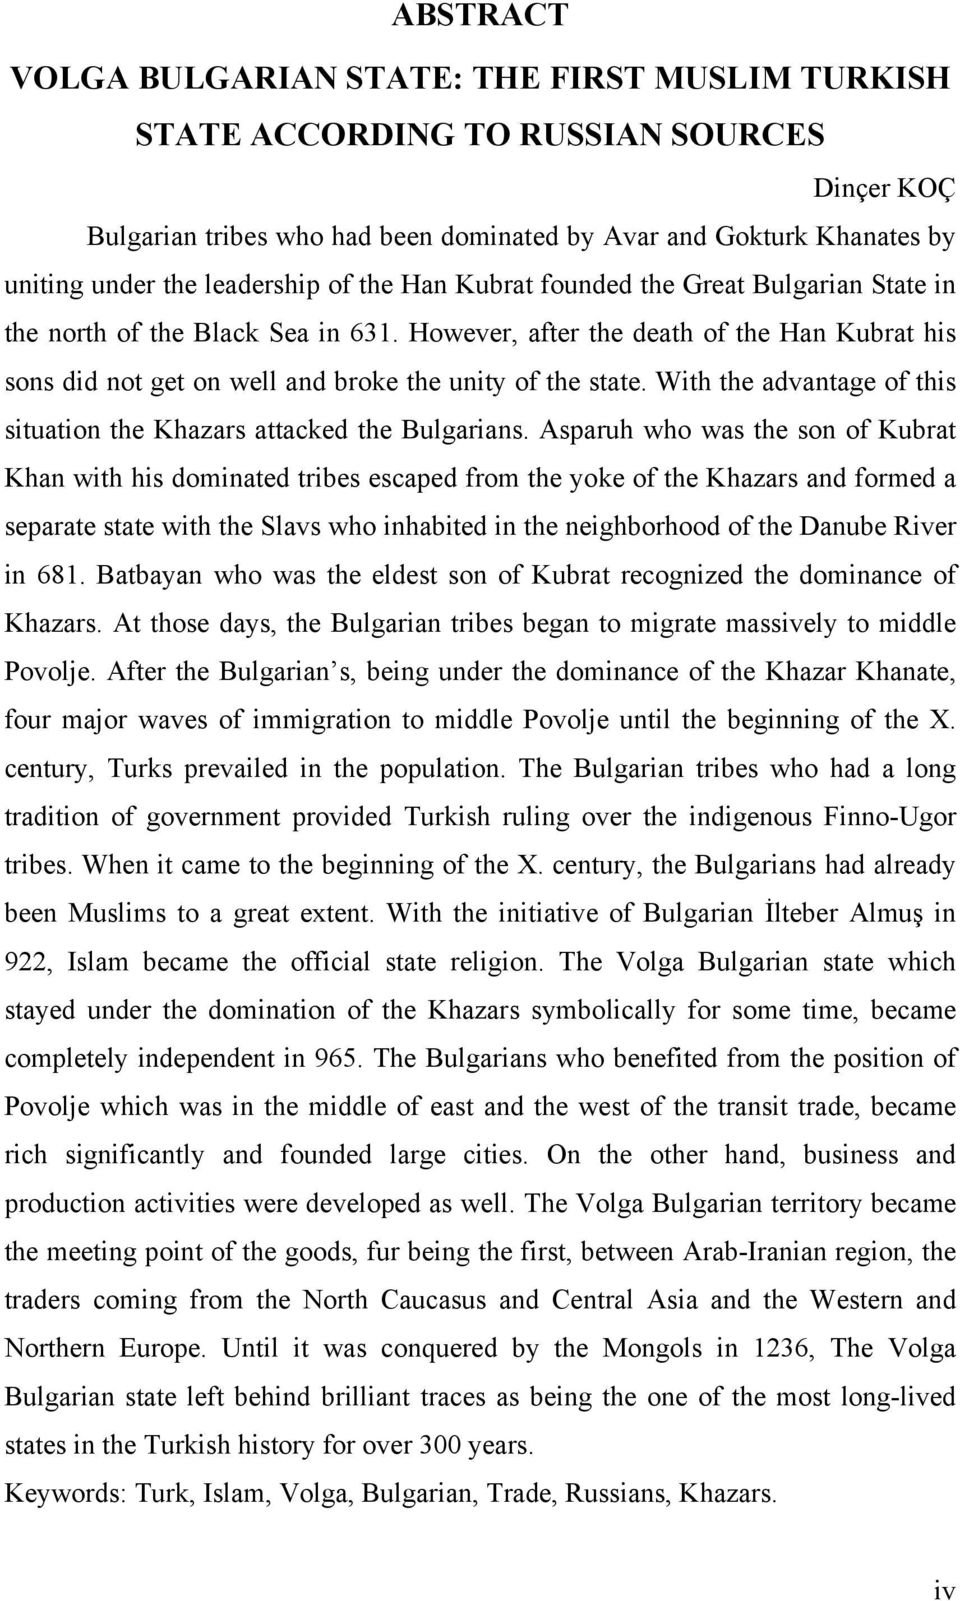 However, after the death of the Han Kubrat his sons did not get on well and broke the unity of the state. With the advantage of this situation the Khazars attacked the Bulgarians.